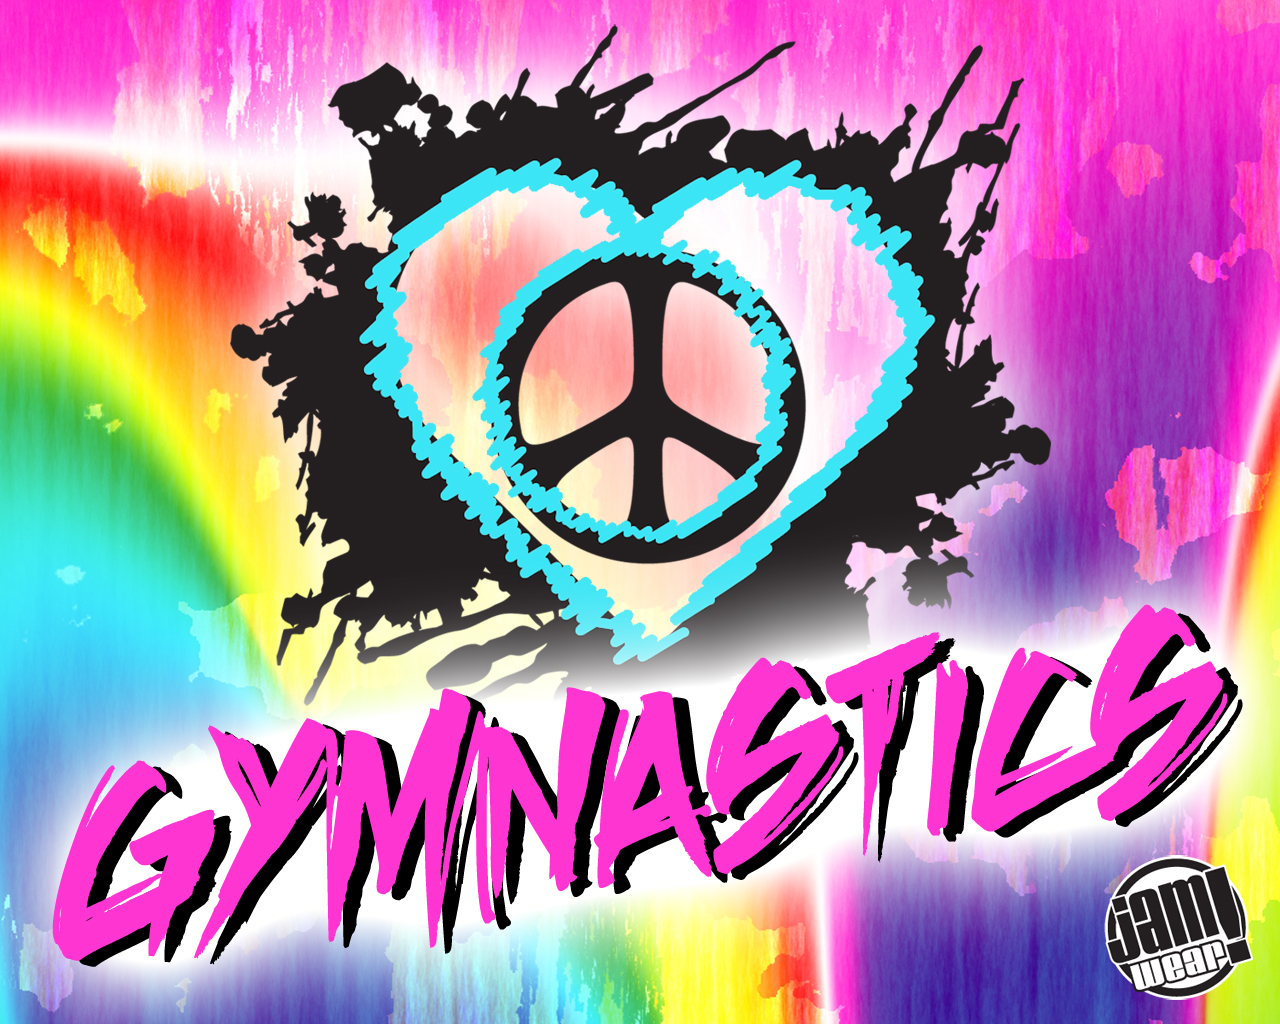 Gymnastics HD Wallpapers Backgrounds 1280x1024